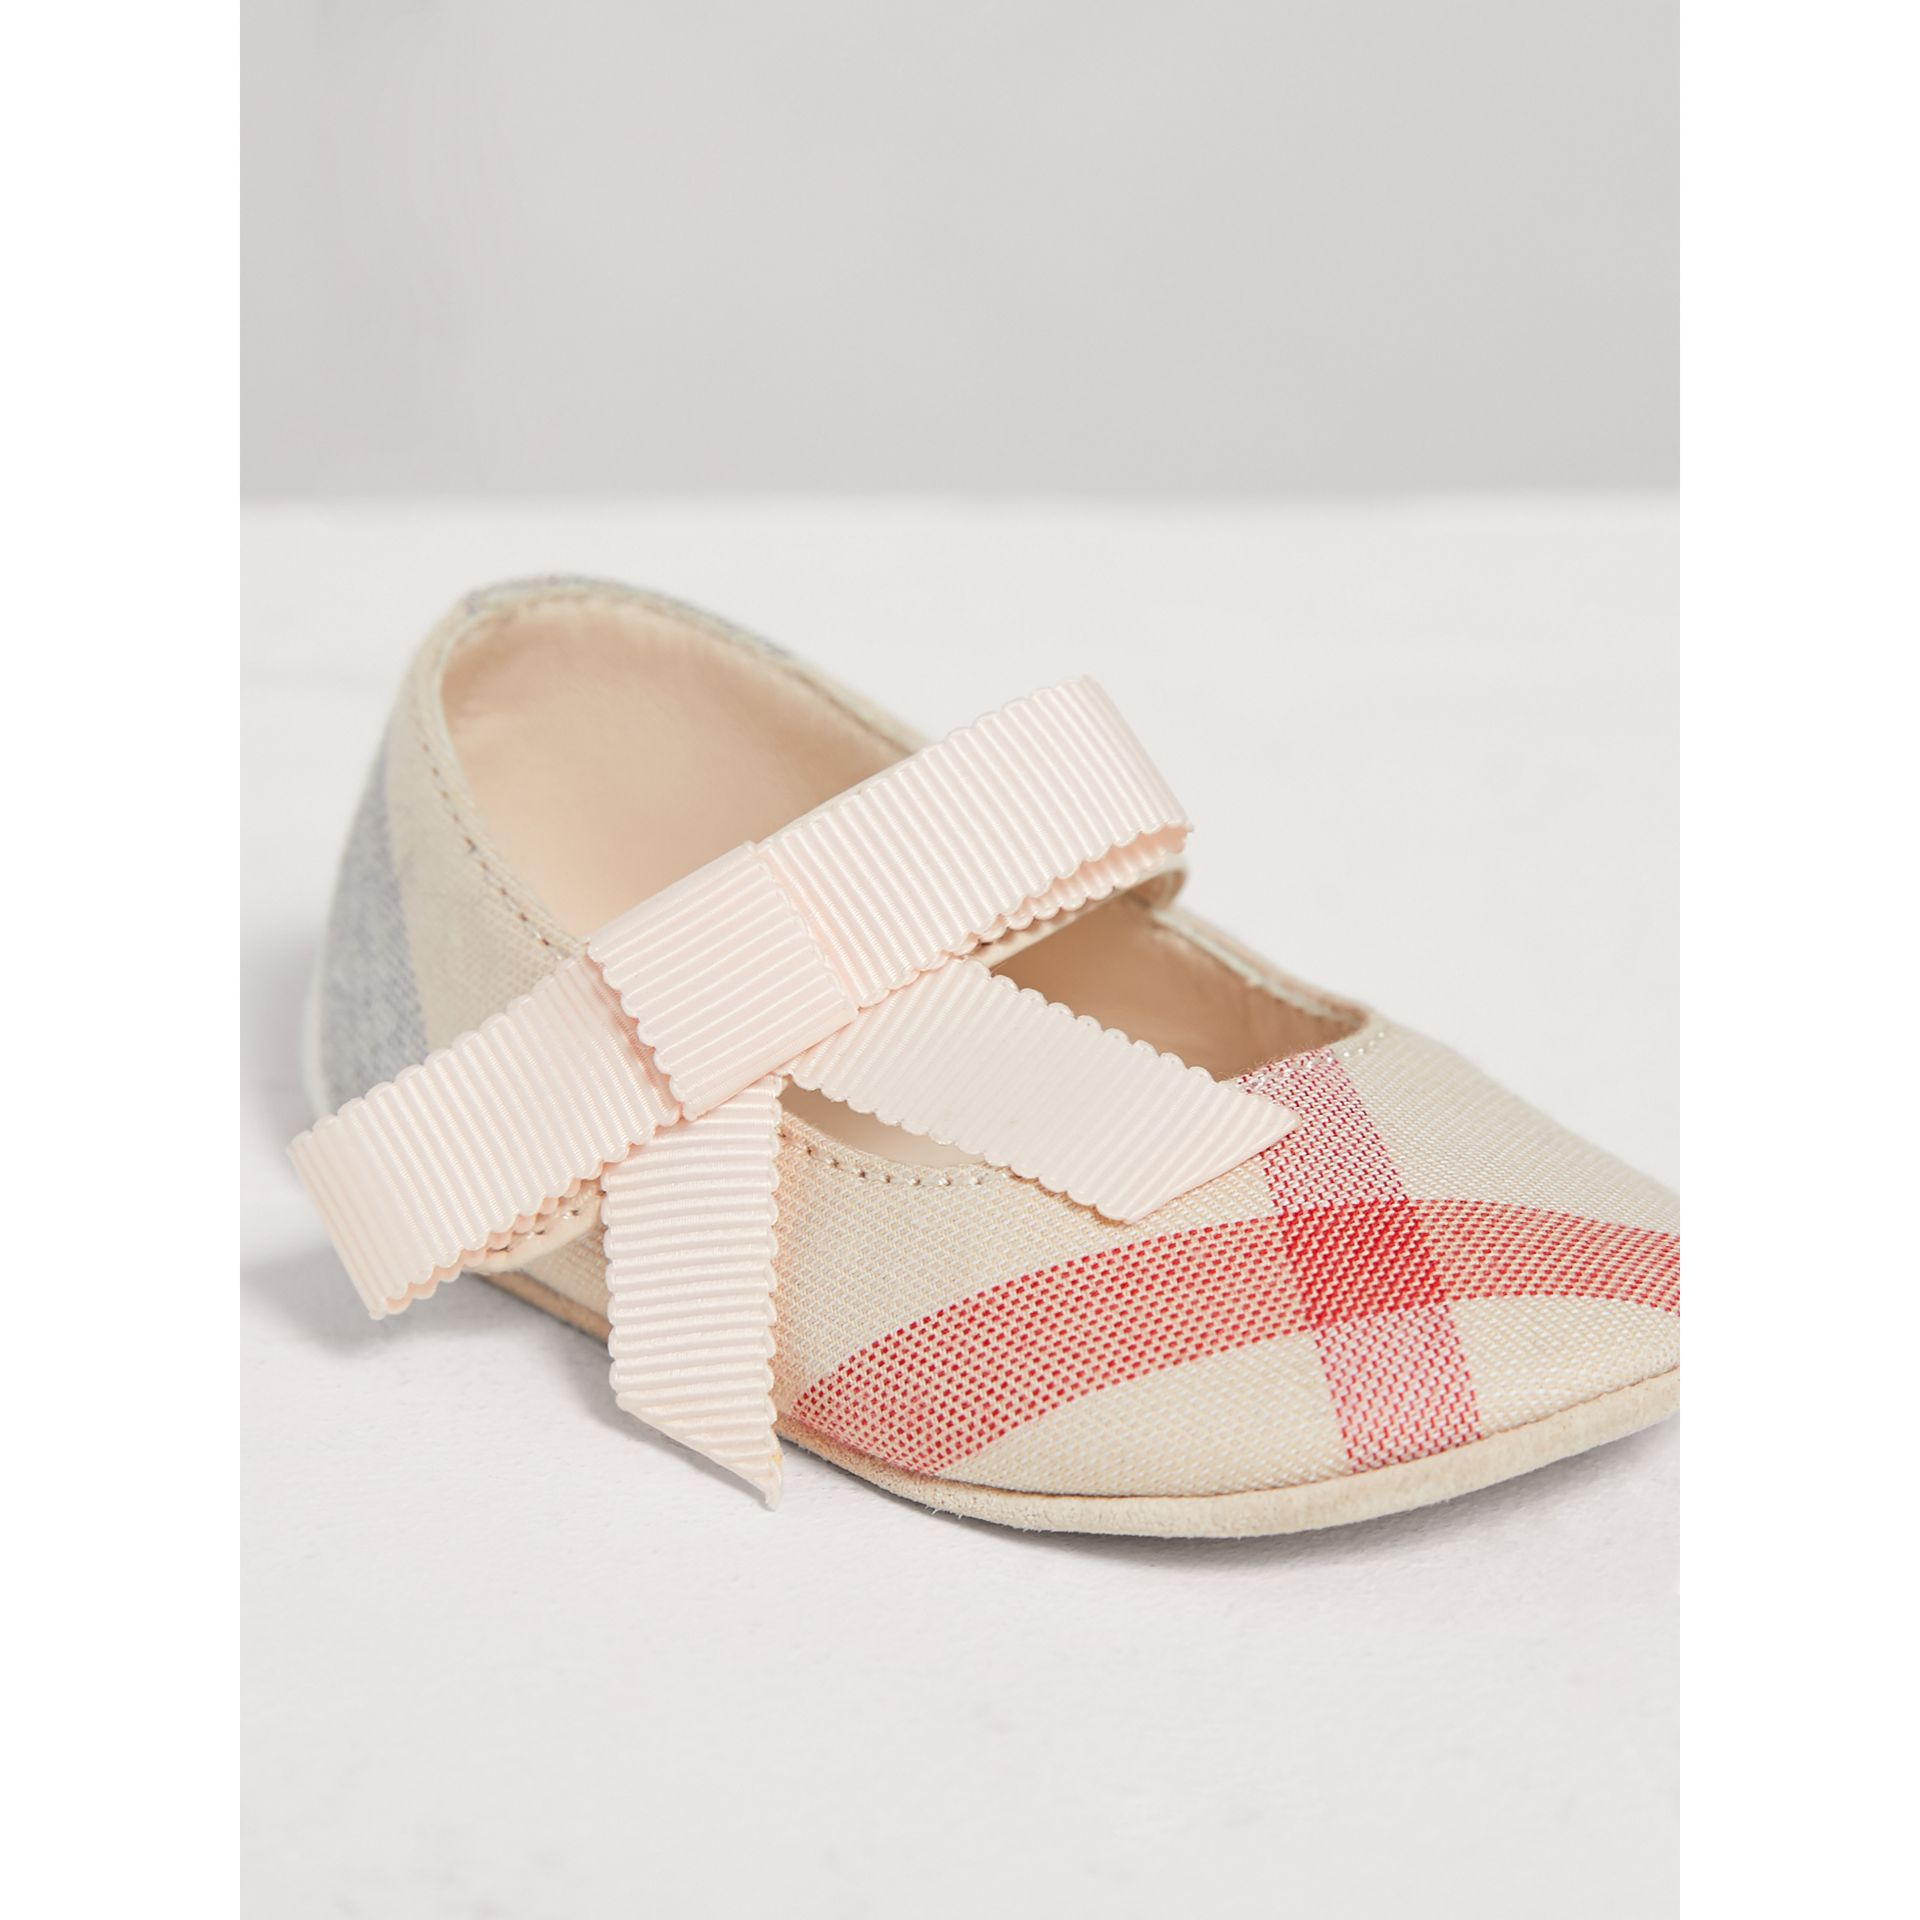 Bow Detail Check Cotton and Leather Ballerinas in Pale Classic - Children | Burberry Singapore - gallery image 3